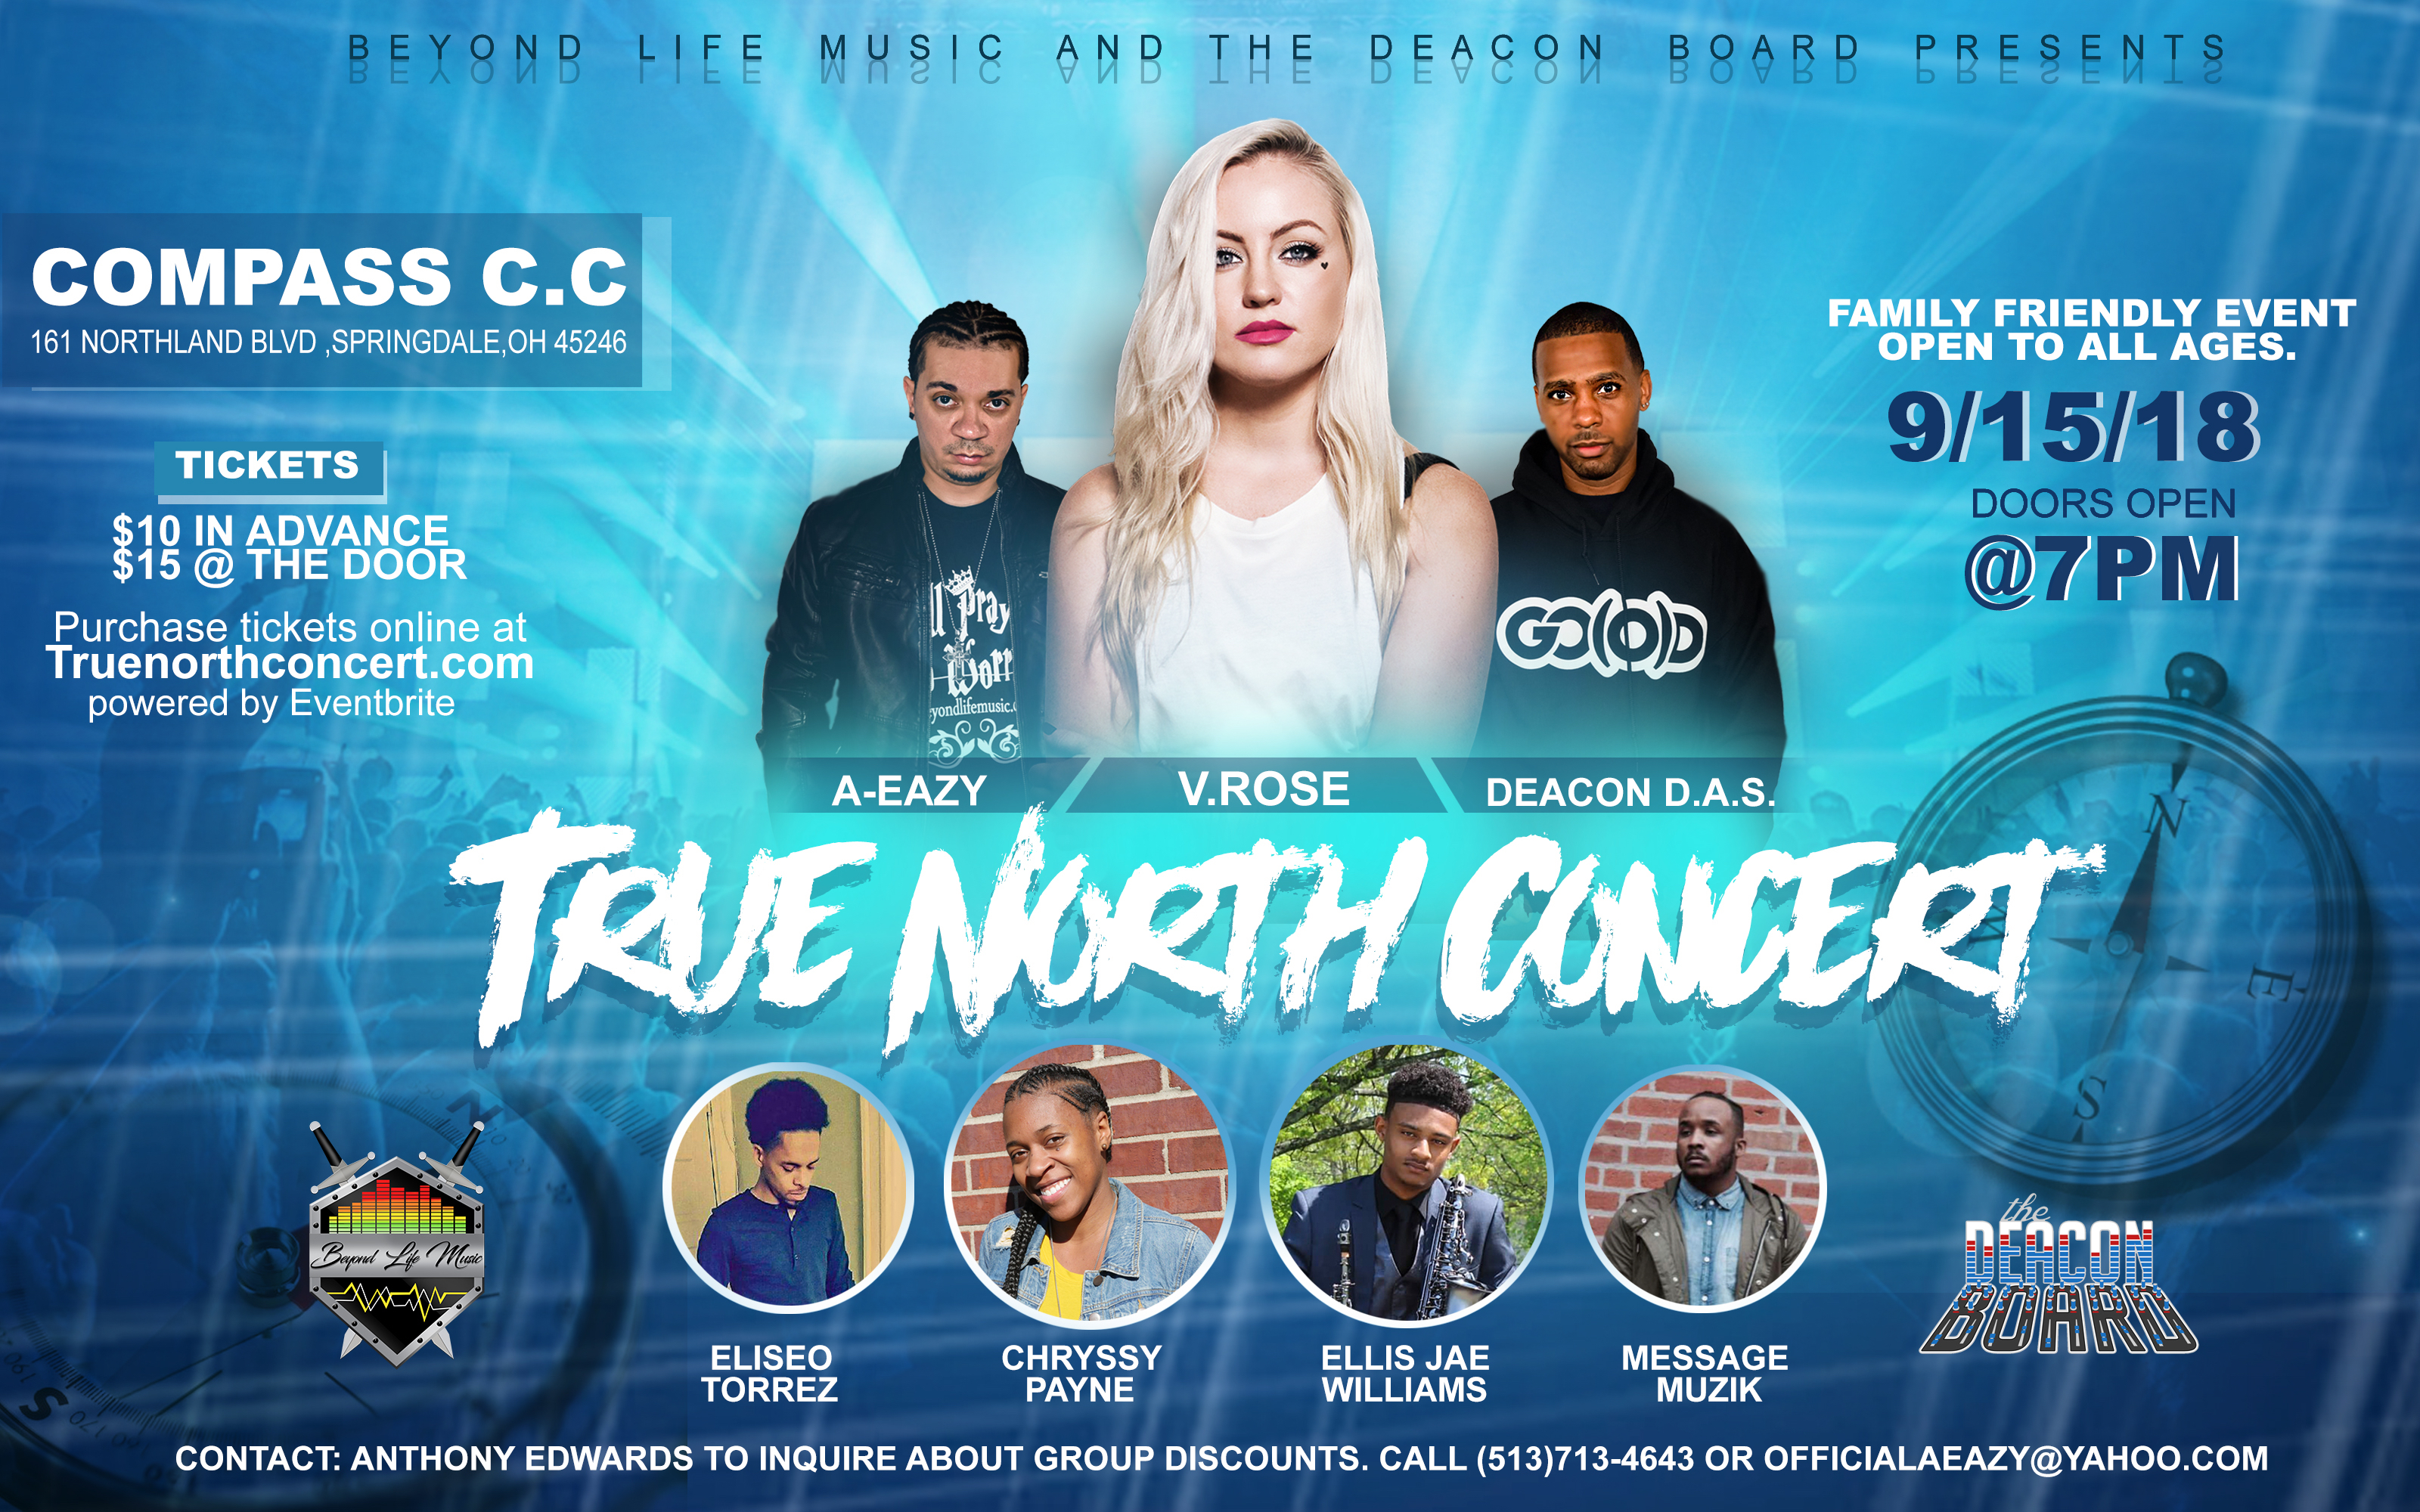 True North Concert – V.Rose + Deacon D.A.S. : Cincinnati, OH – Sat. Sept15th, 2018